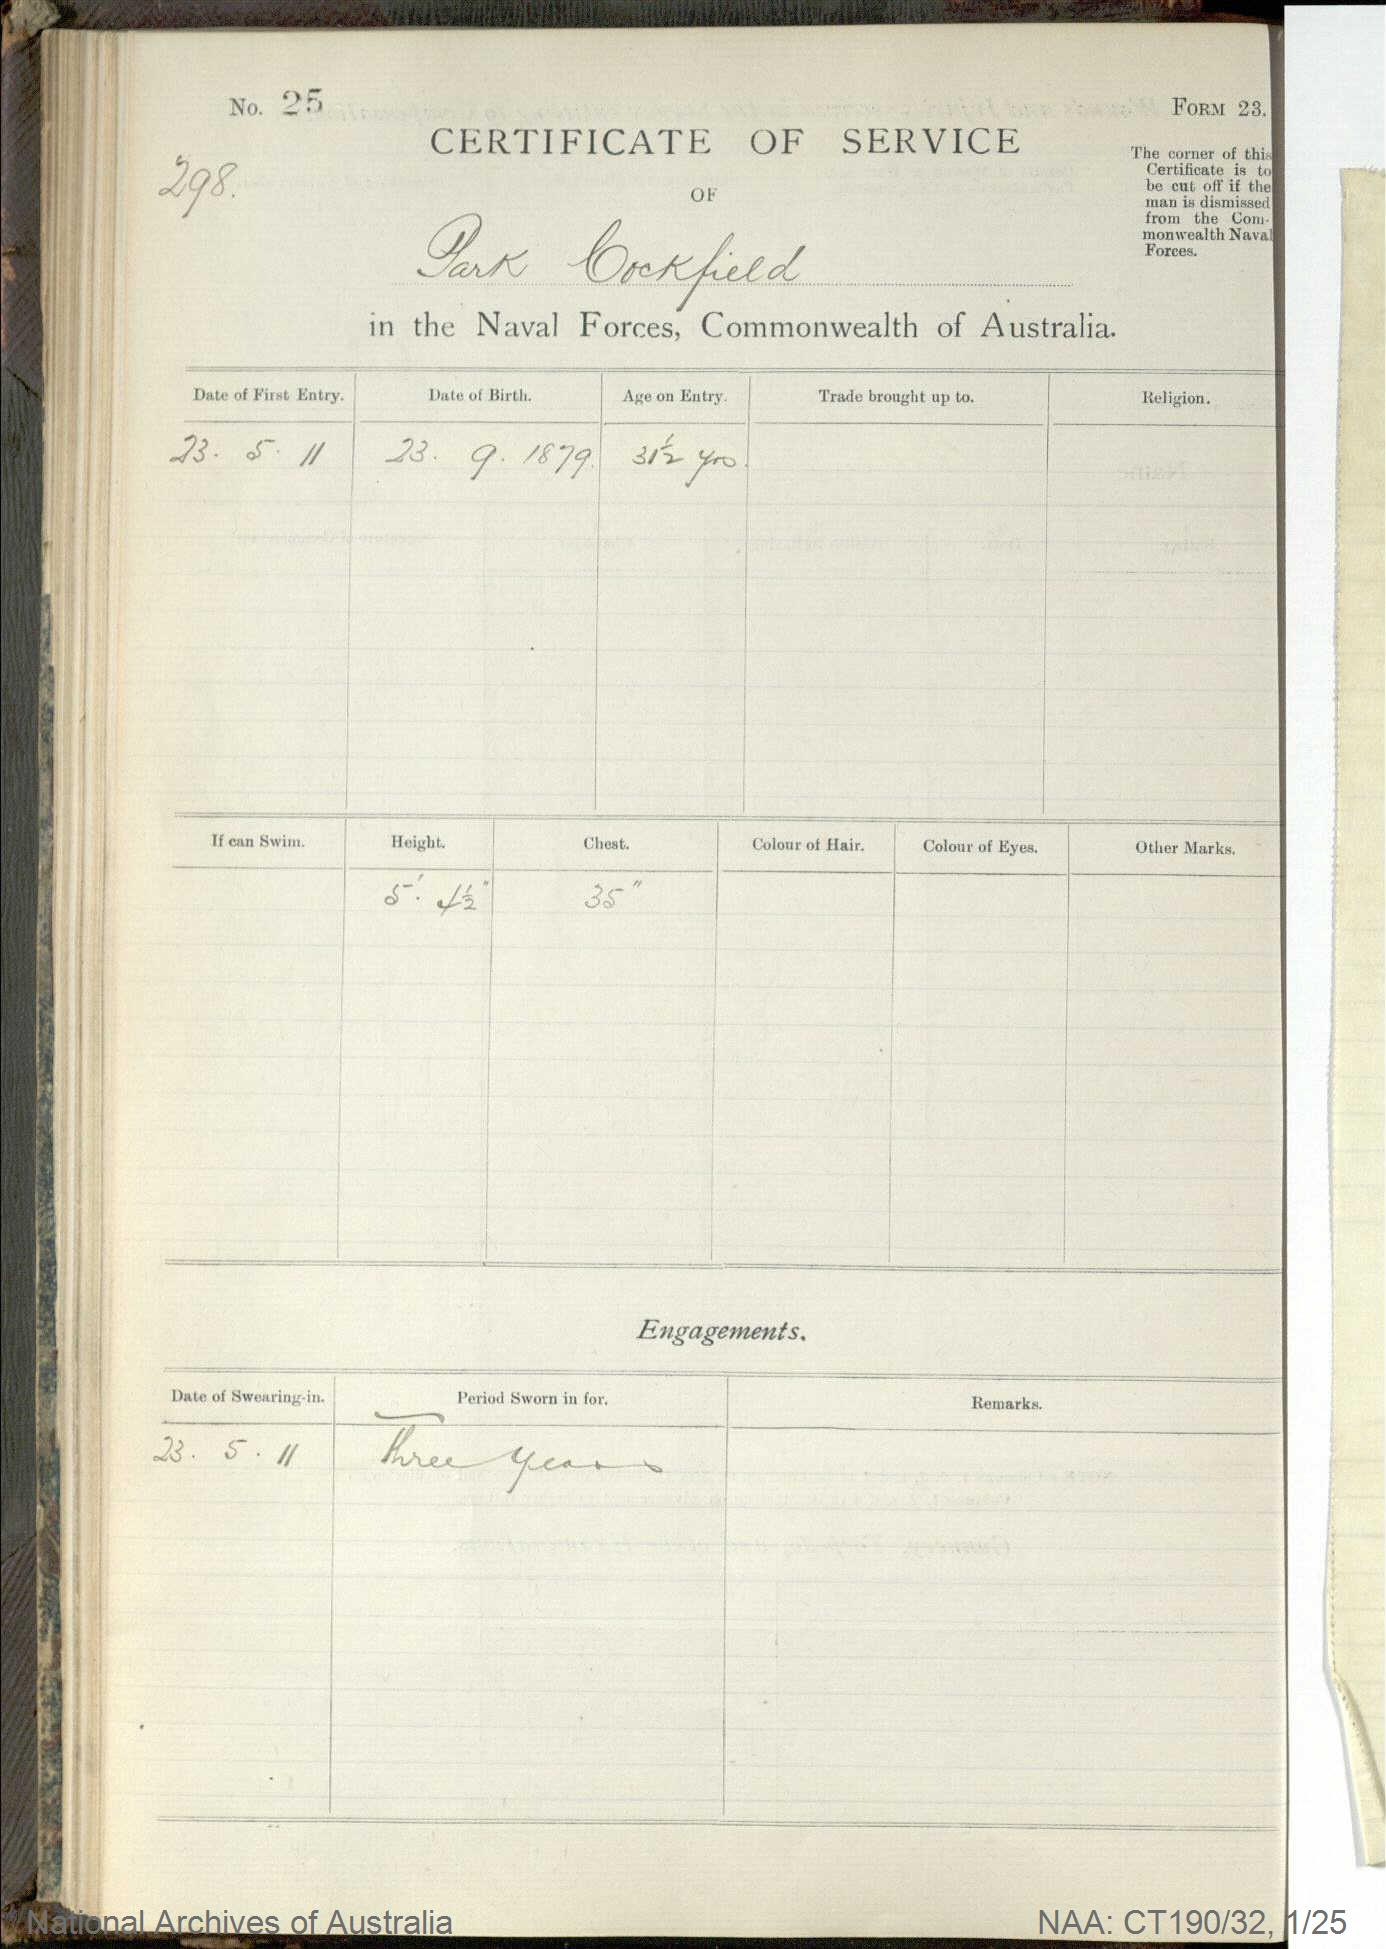 SURNAME - COCKFIELD;  GIVEN NAME(S) - Park;  OFFICIAL NUMBER - 298;  DATE OF BIRTH - 23 September 1897;  PLACE OF BIRTH - [Unknown];  NEXT OF KIN - [Unknown];  SERVICE/STATION - [Unknown];  REGISTRATION DATE - [Unknown]